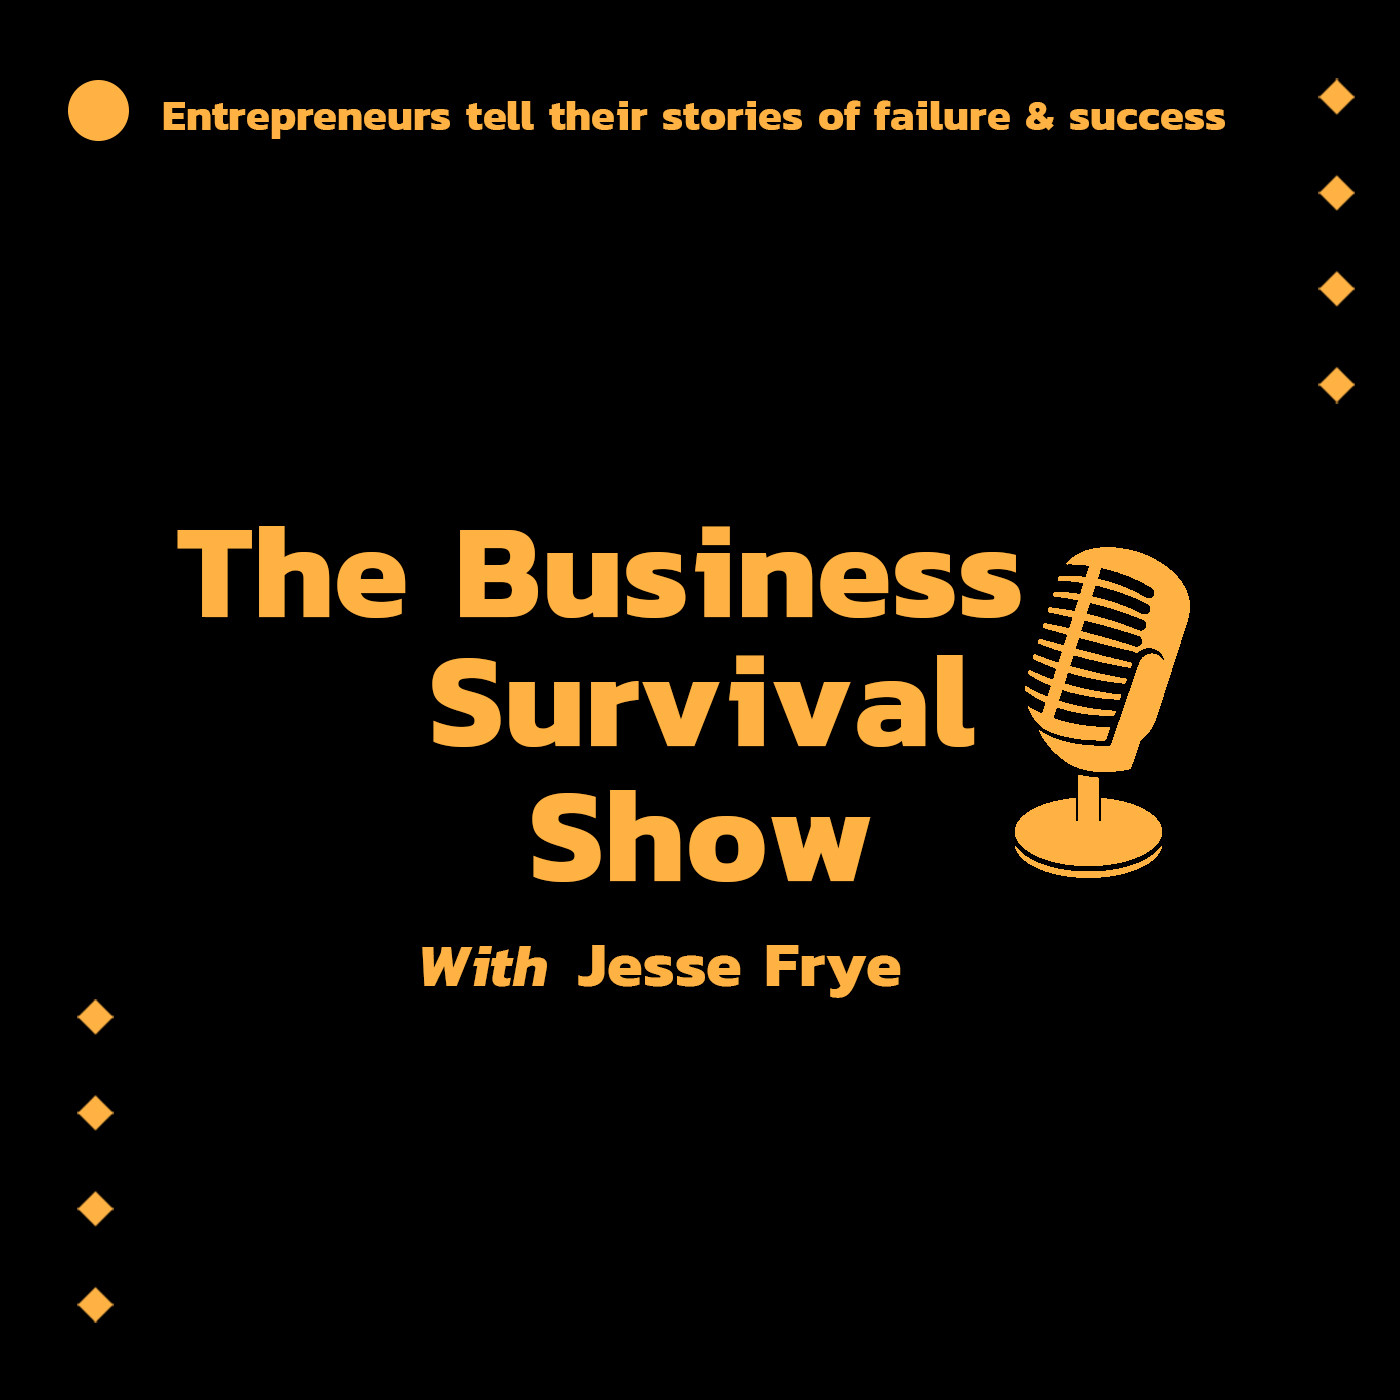 The Business Survival Show